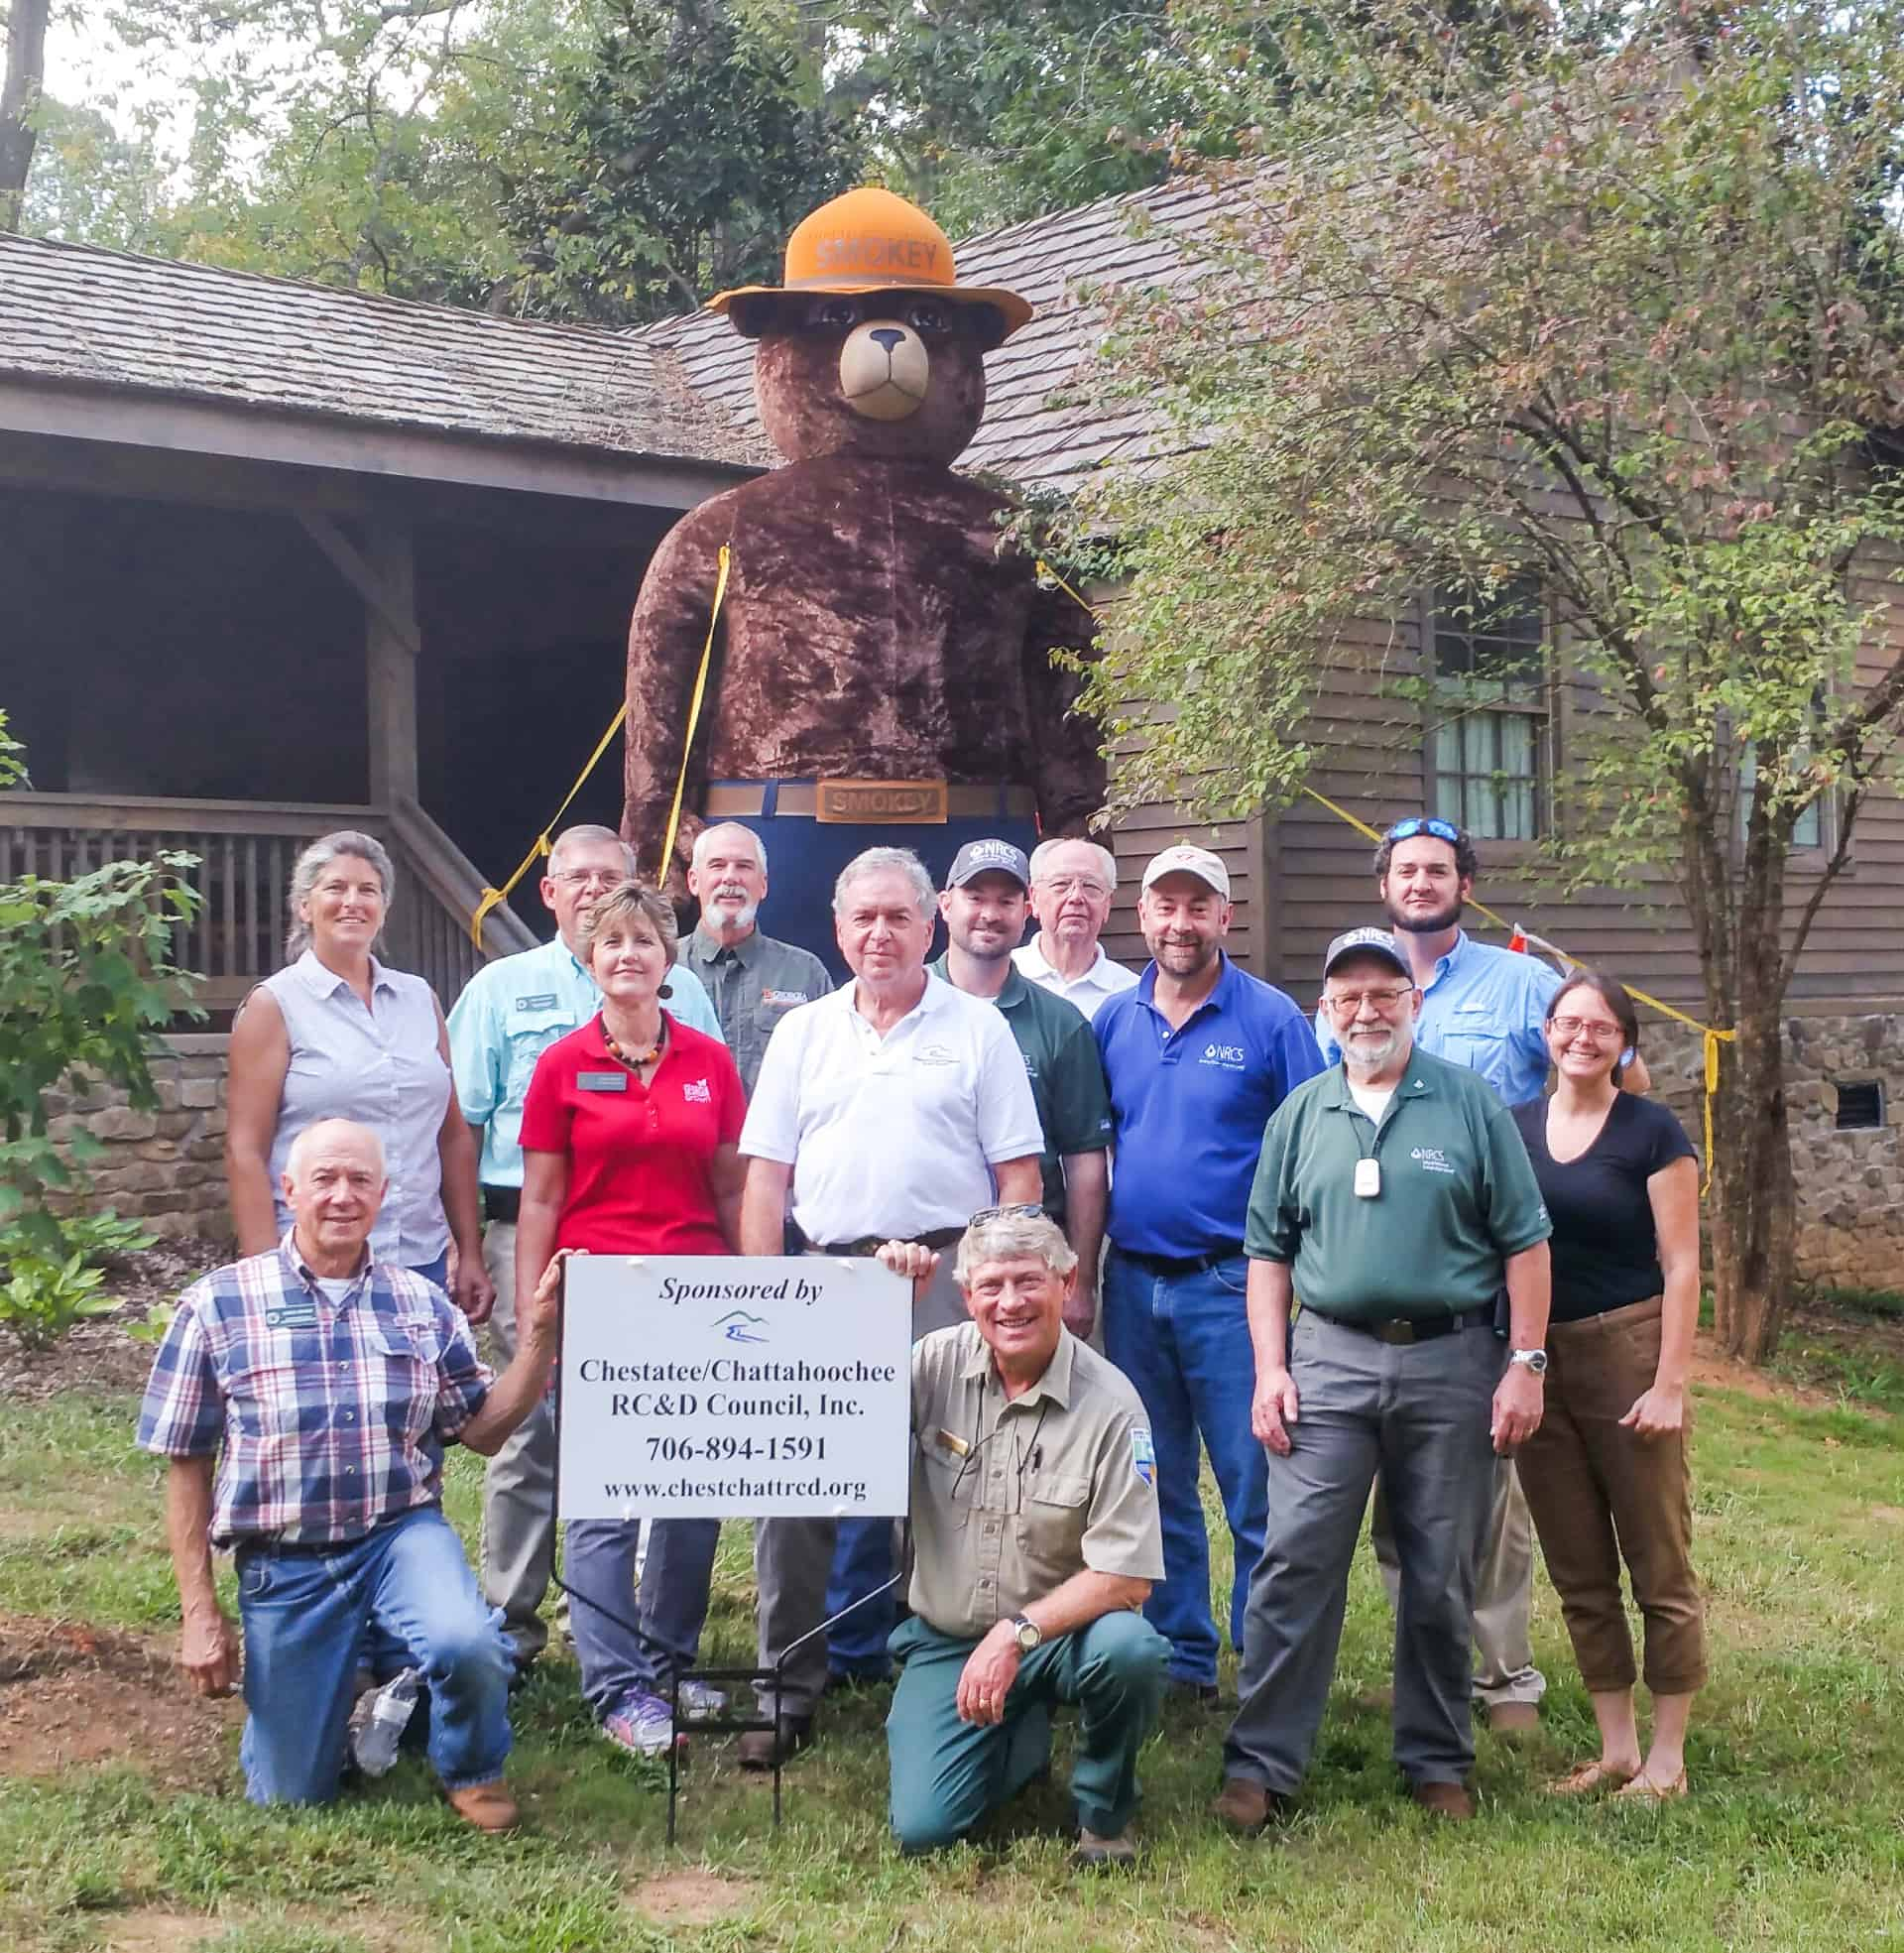 Frank and 12 colleagues with a Smokey the Bear prop